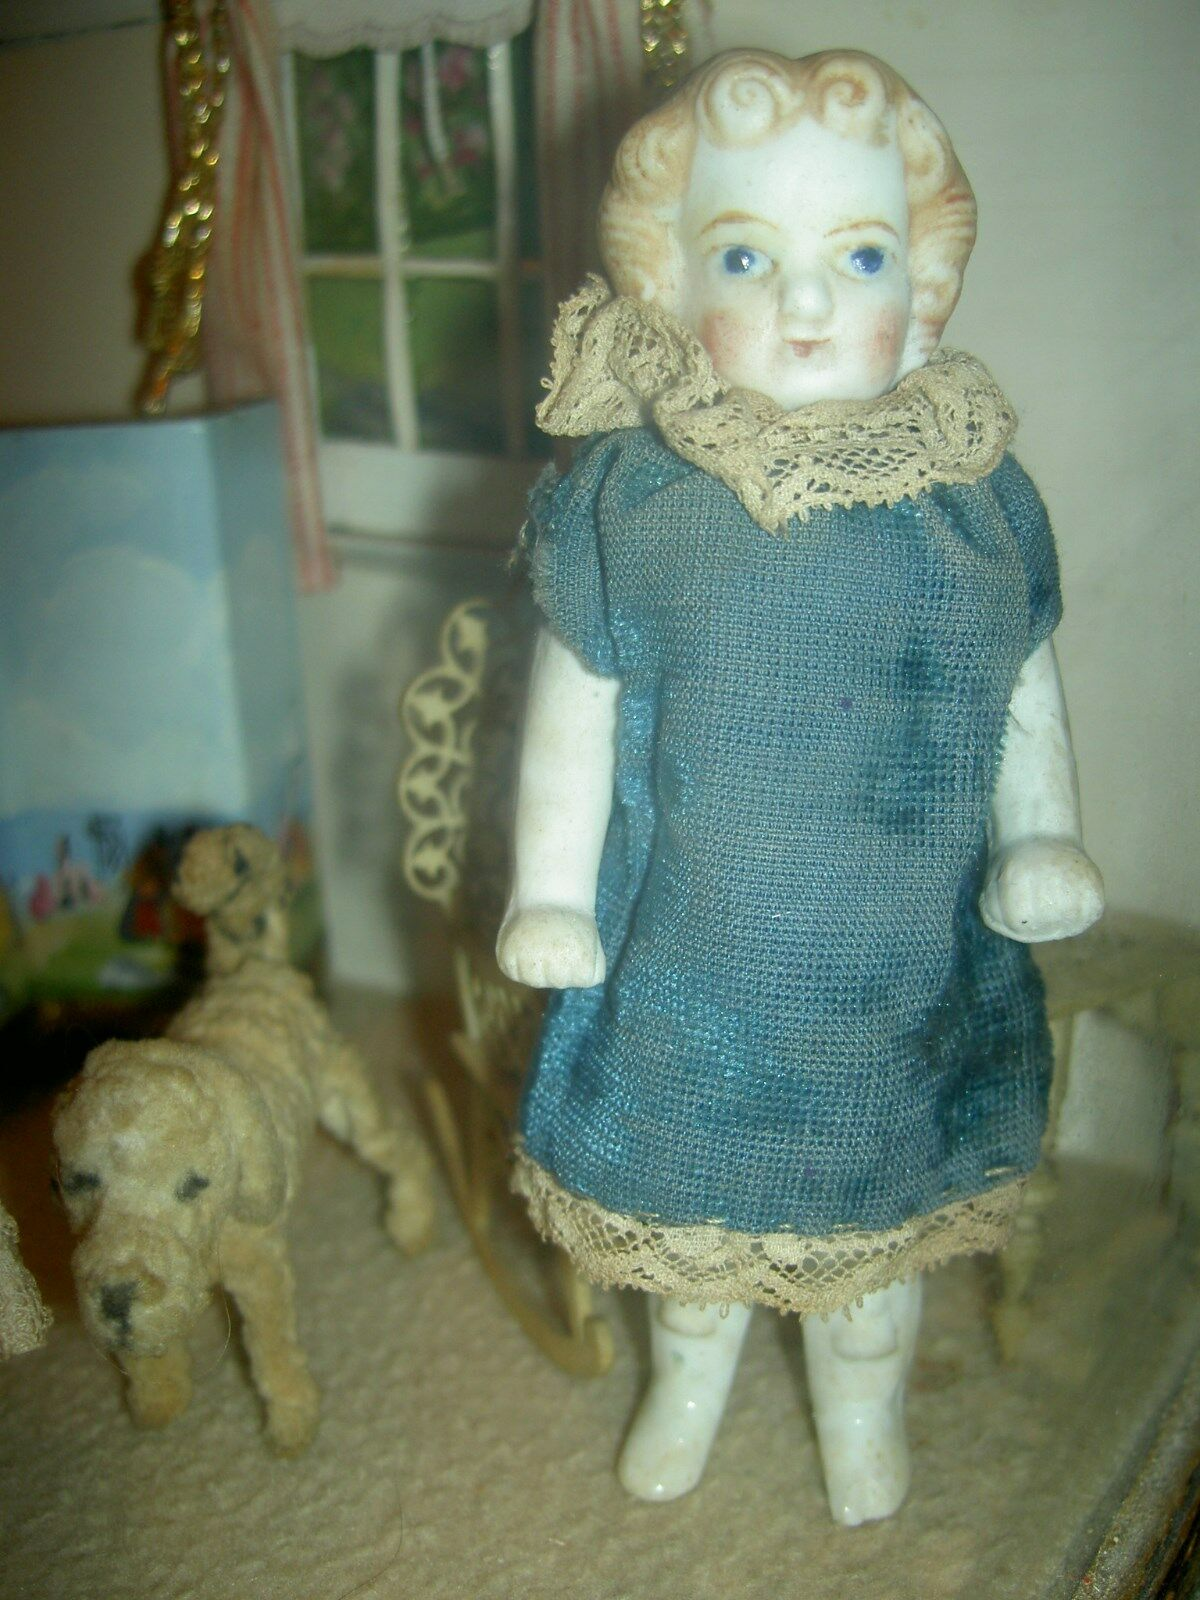 SWEET early German, wire jt'd. parian all bisque dollhouse doll with molded hair